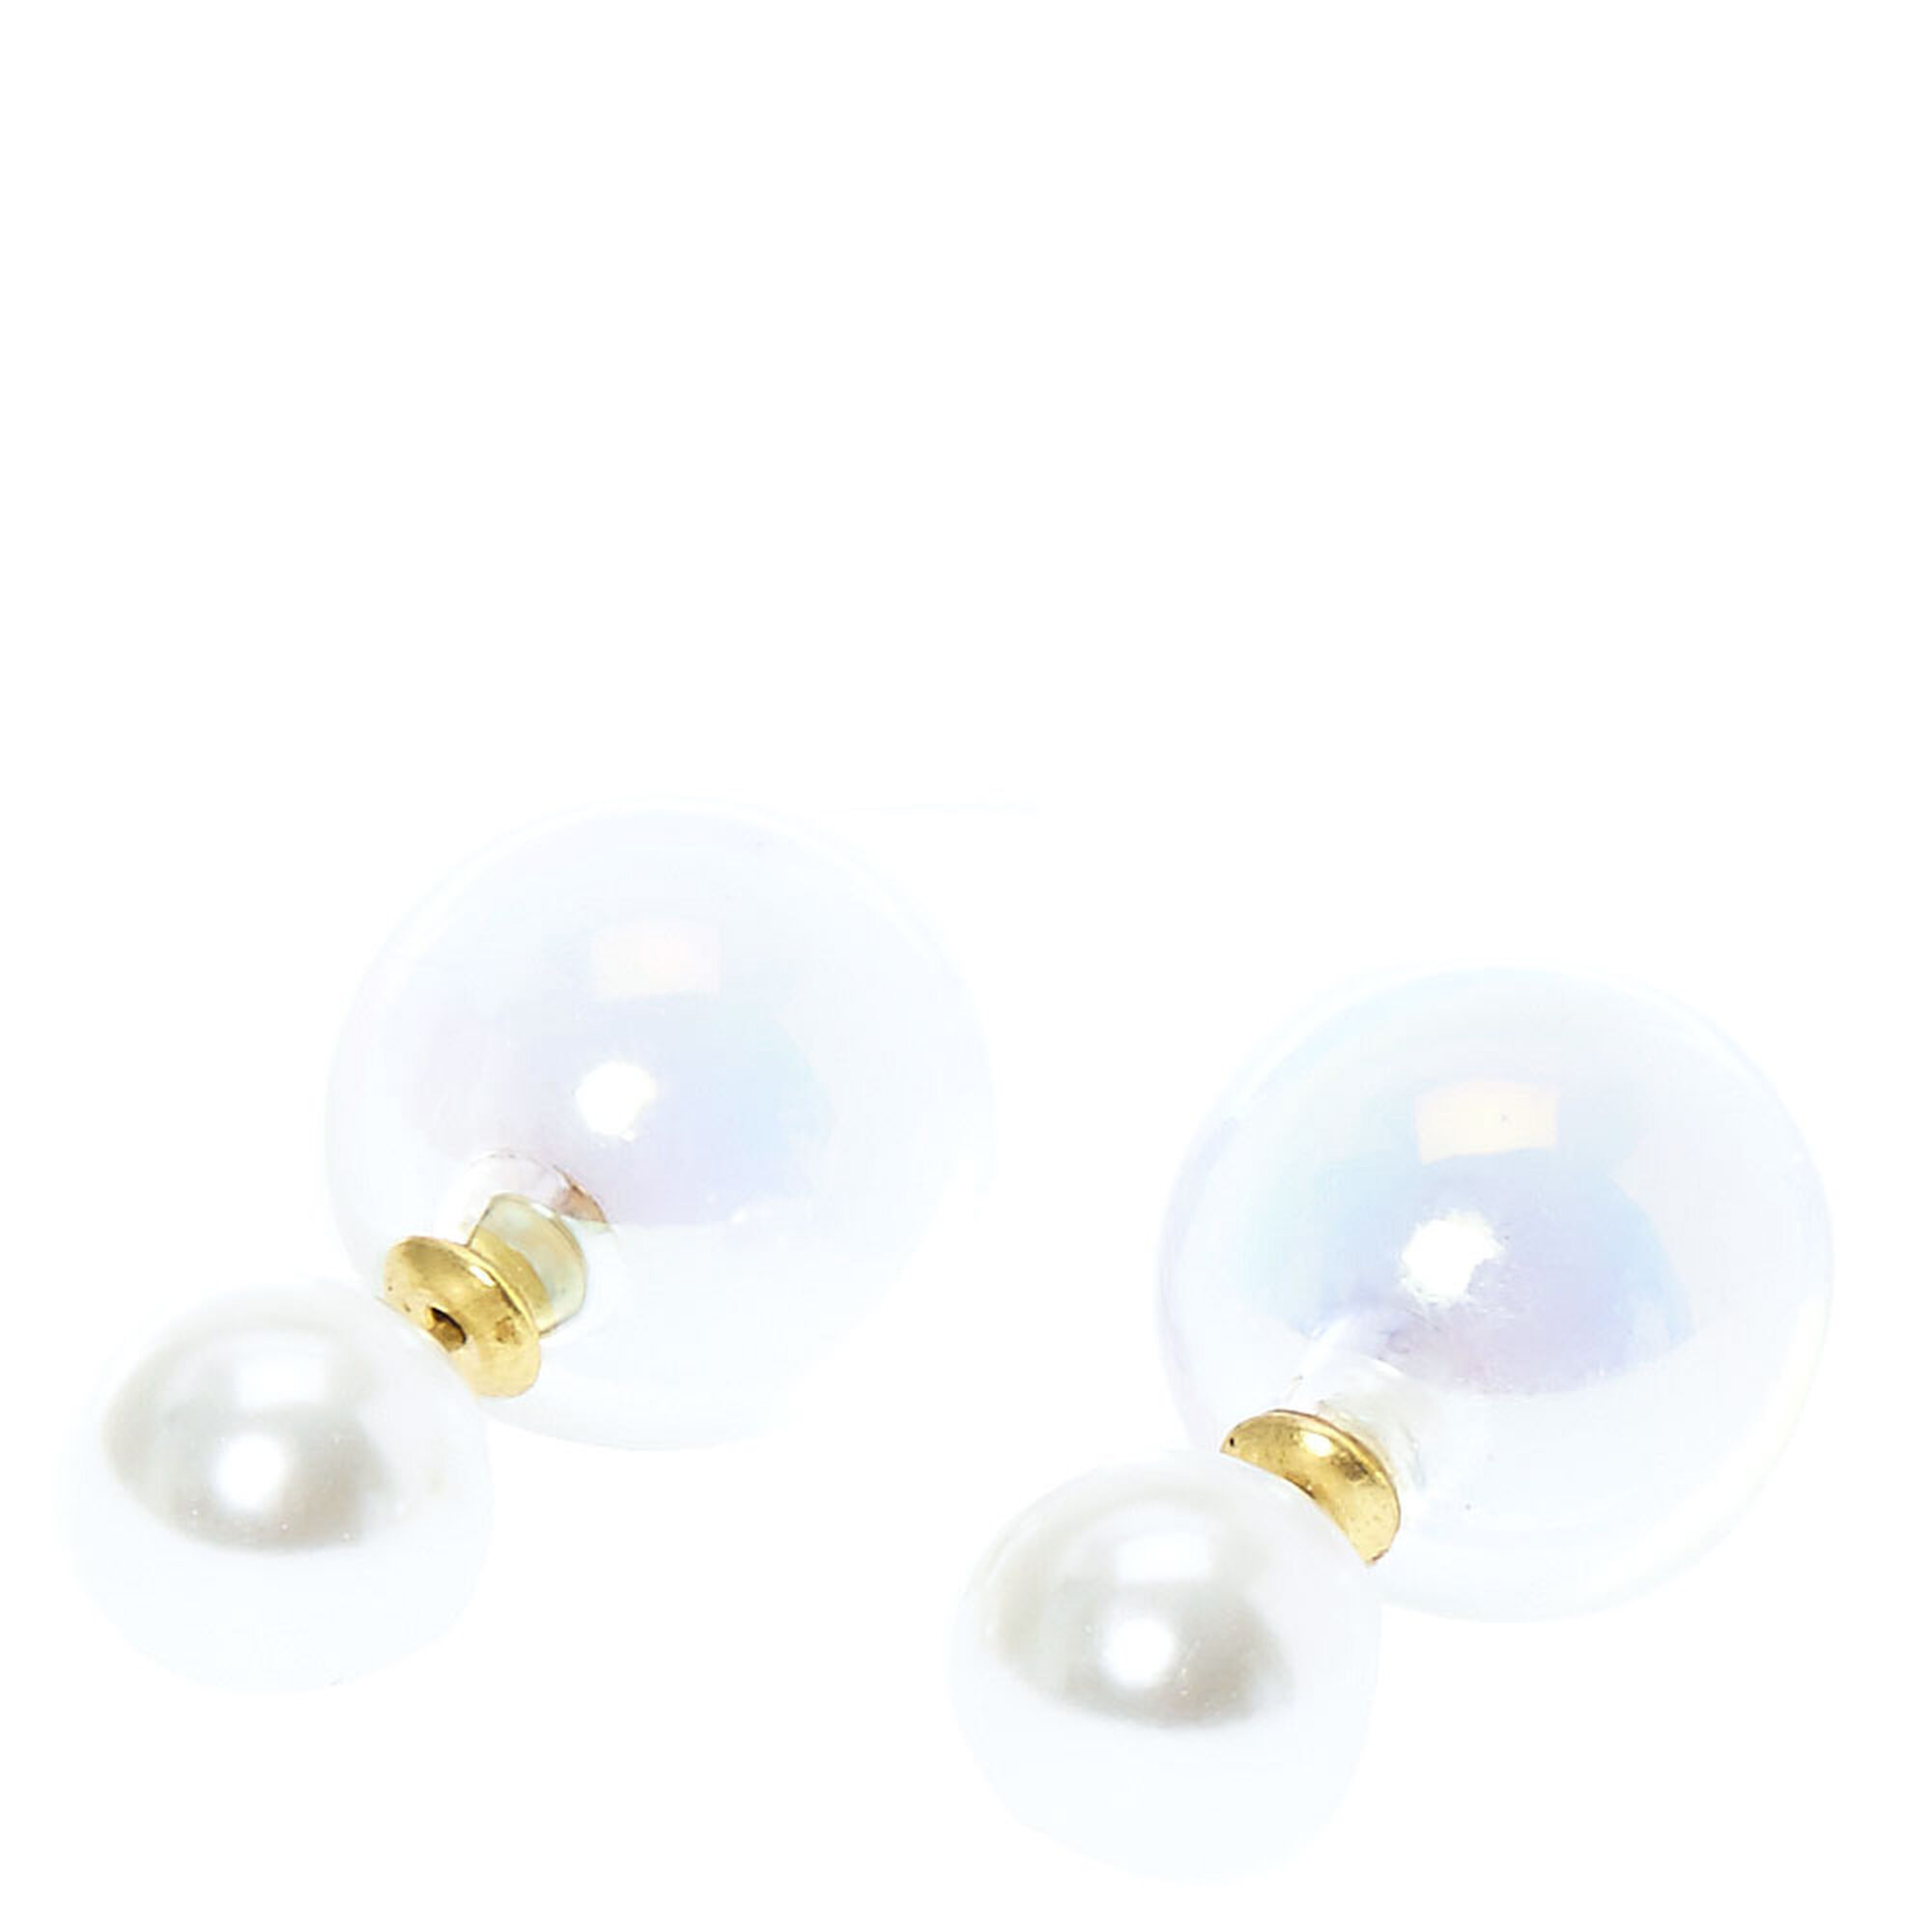 claire real and glass amp back clear s ball stud front earrings faux pearl